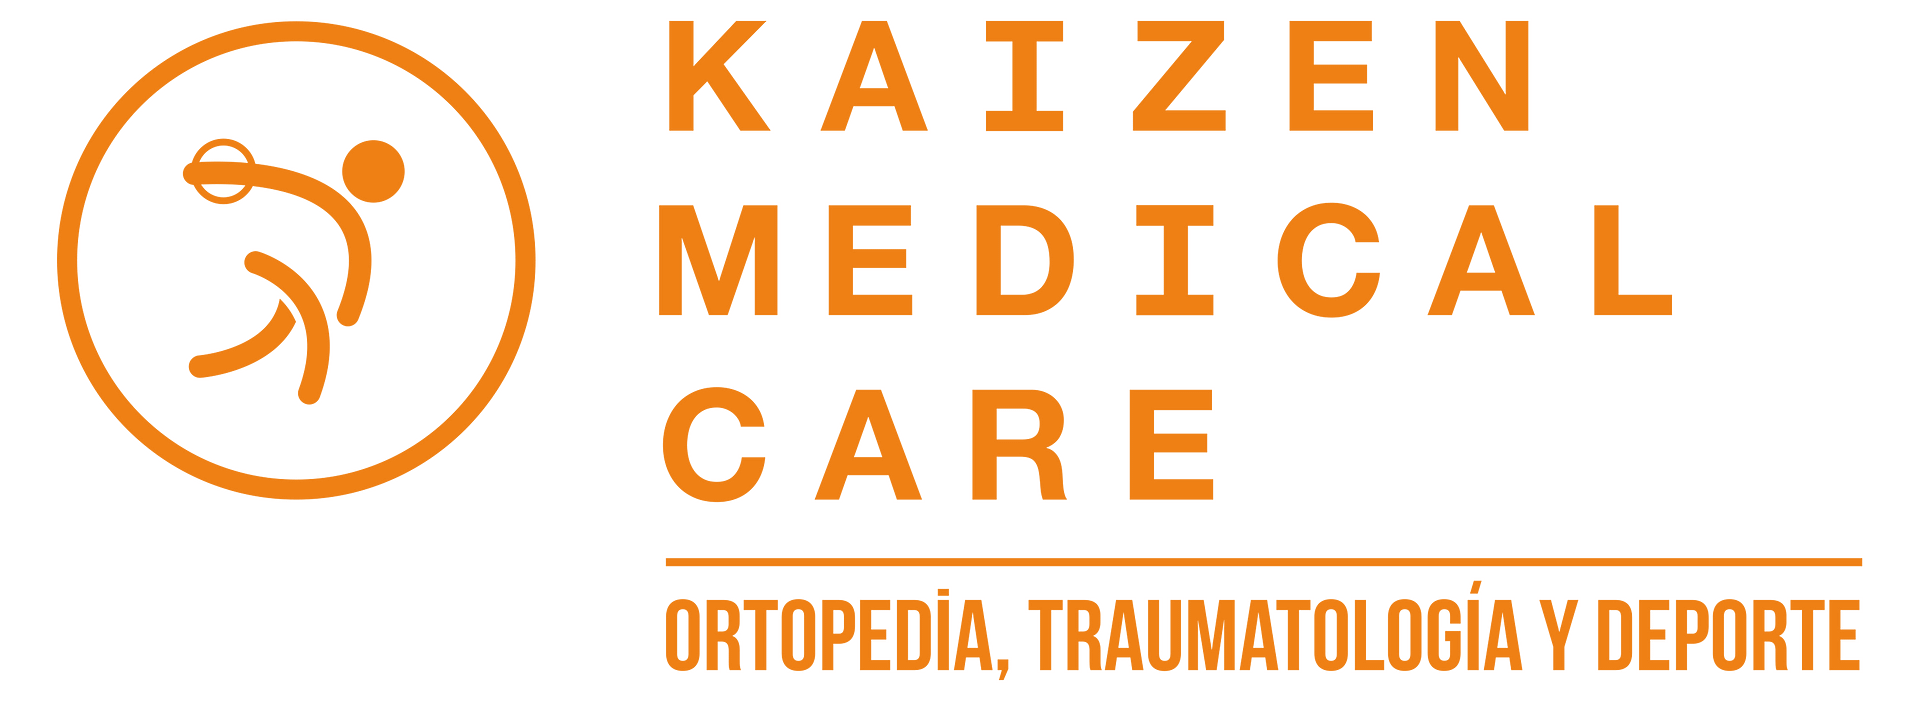 KAIZEN MEDICAL CARE